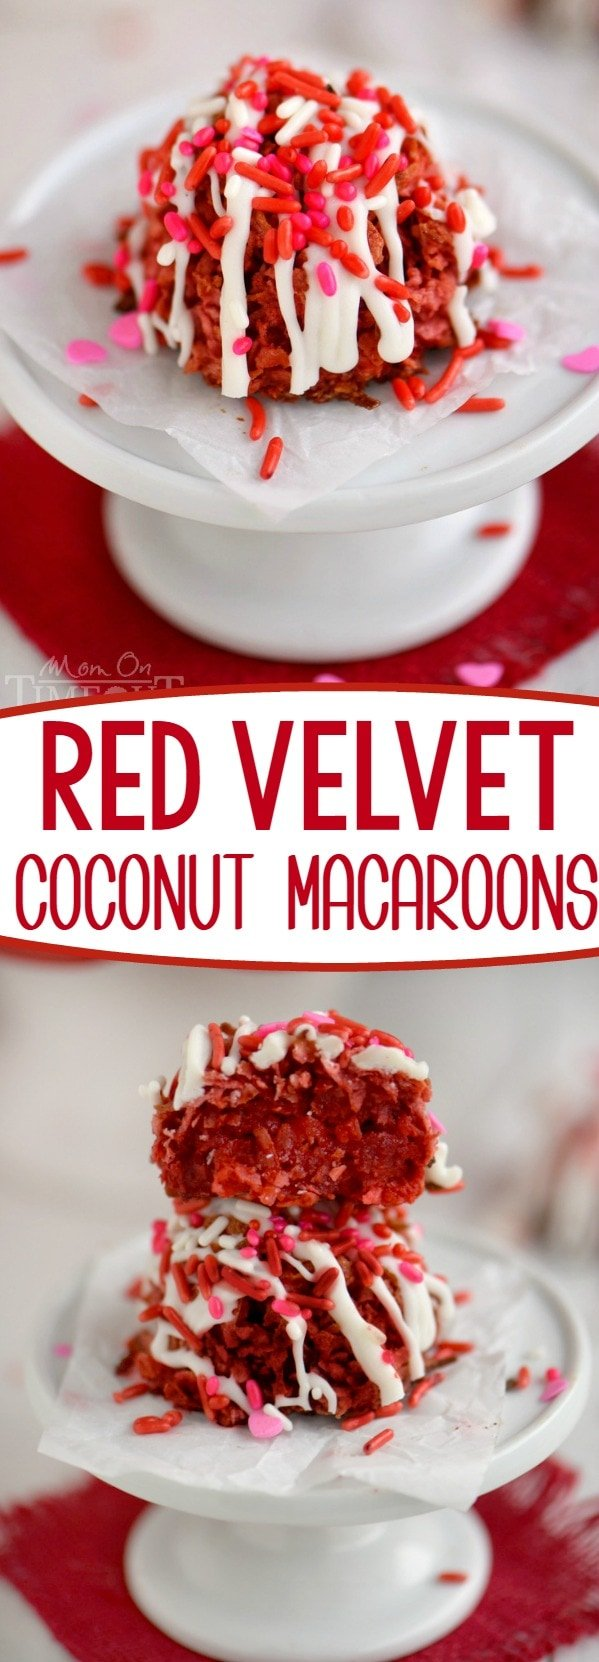 red-velvet-coconut-macaroons-recipe-collage